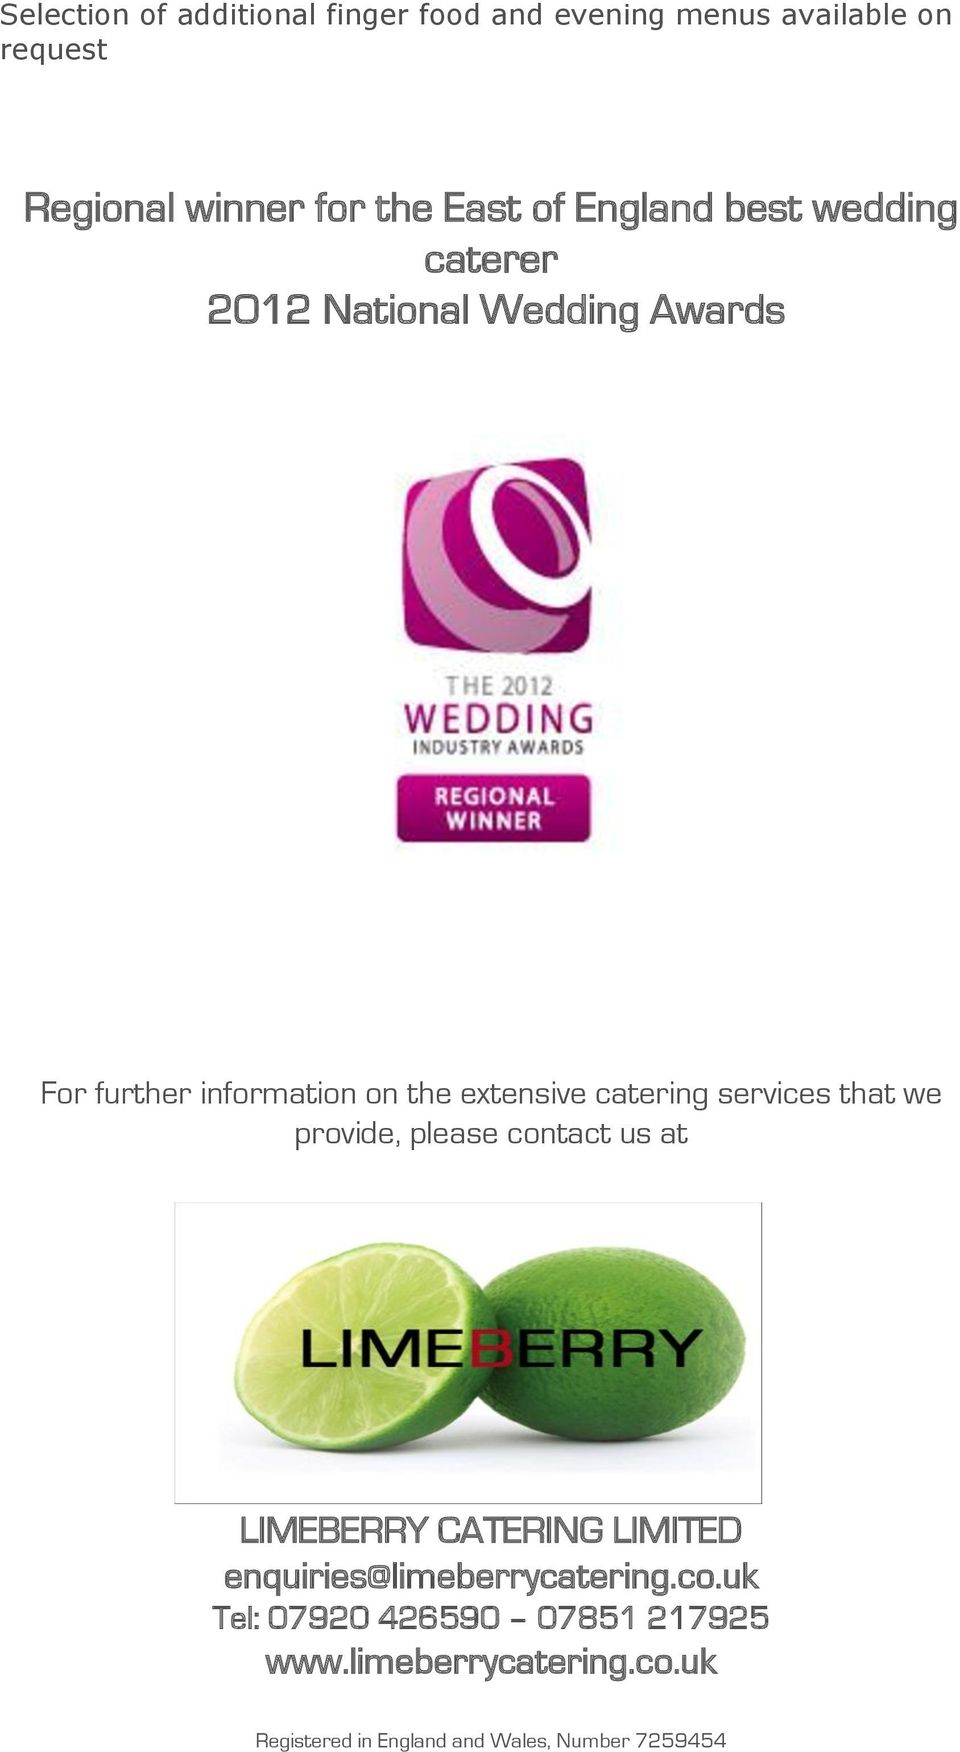 services that we provide, please contact us at LIMEBERRY CATERING LIMITED enquiries@limeberrycatering.co.uk Tel: 07920 426590 07851 217925 www.